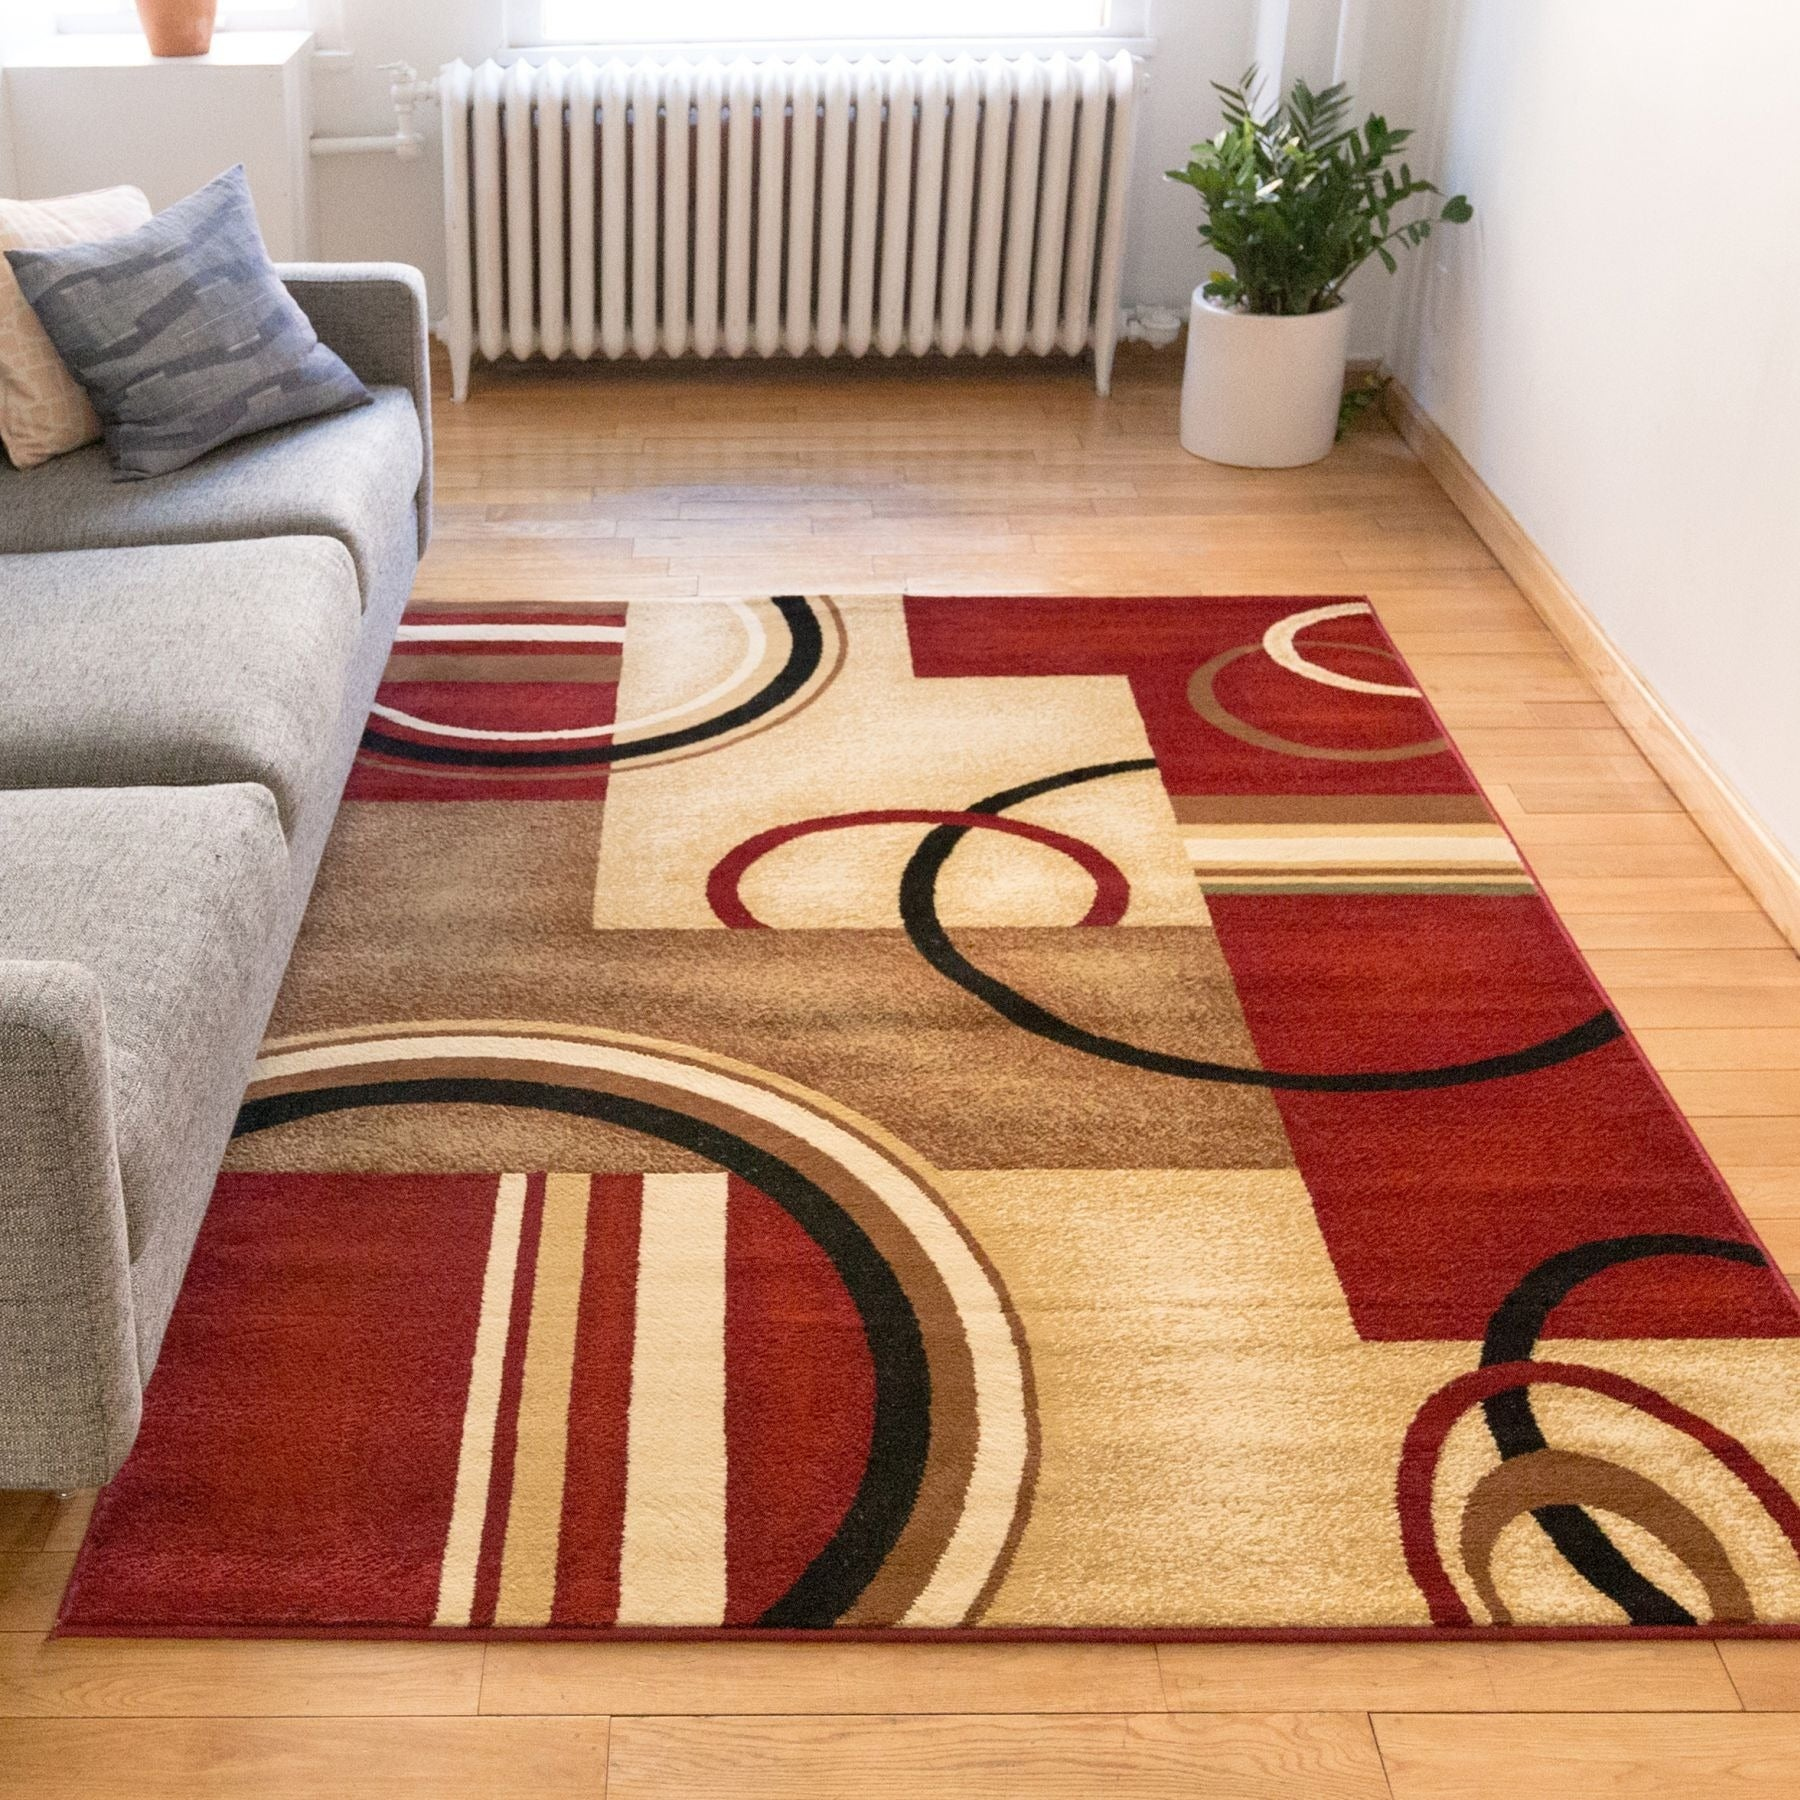 Well Woven Arcs And Shapes Red Ivory Beige Modern Circles Bo Geometric Abstract Area Rug 7 10 X 9 Free Shipping Today 14034758